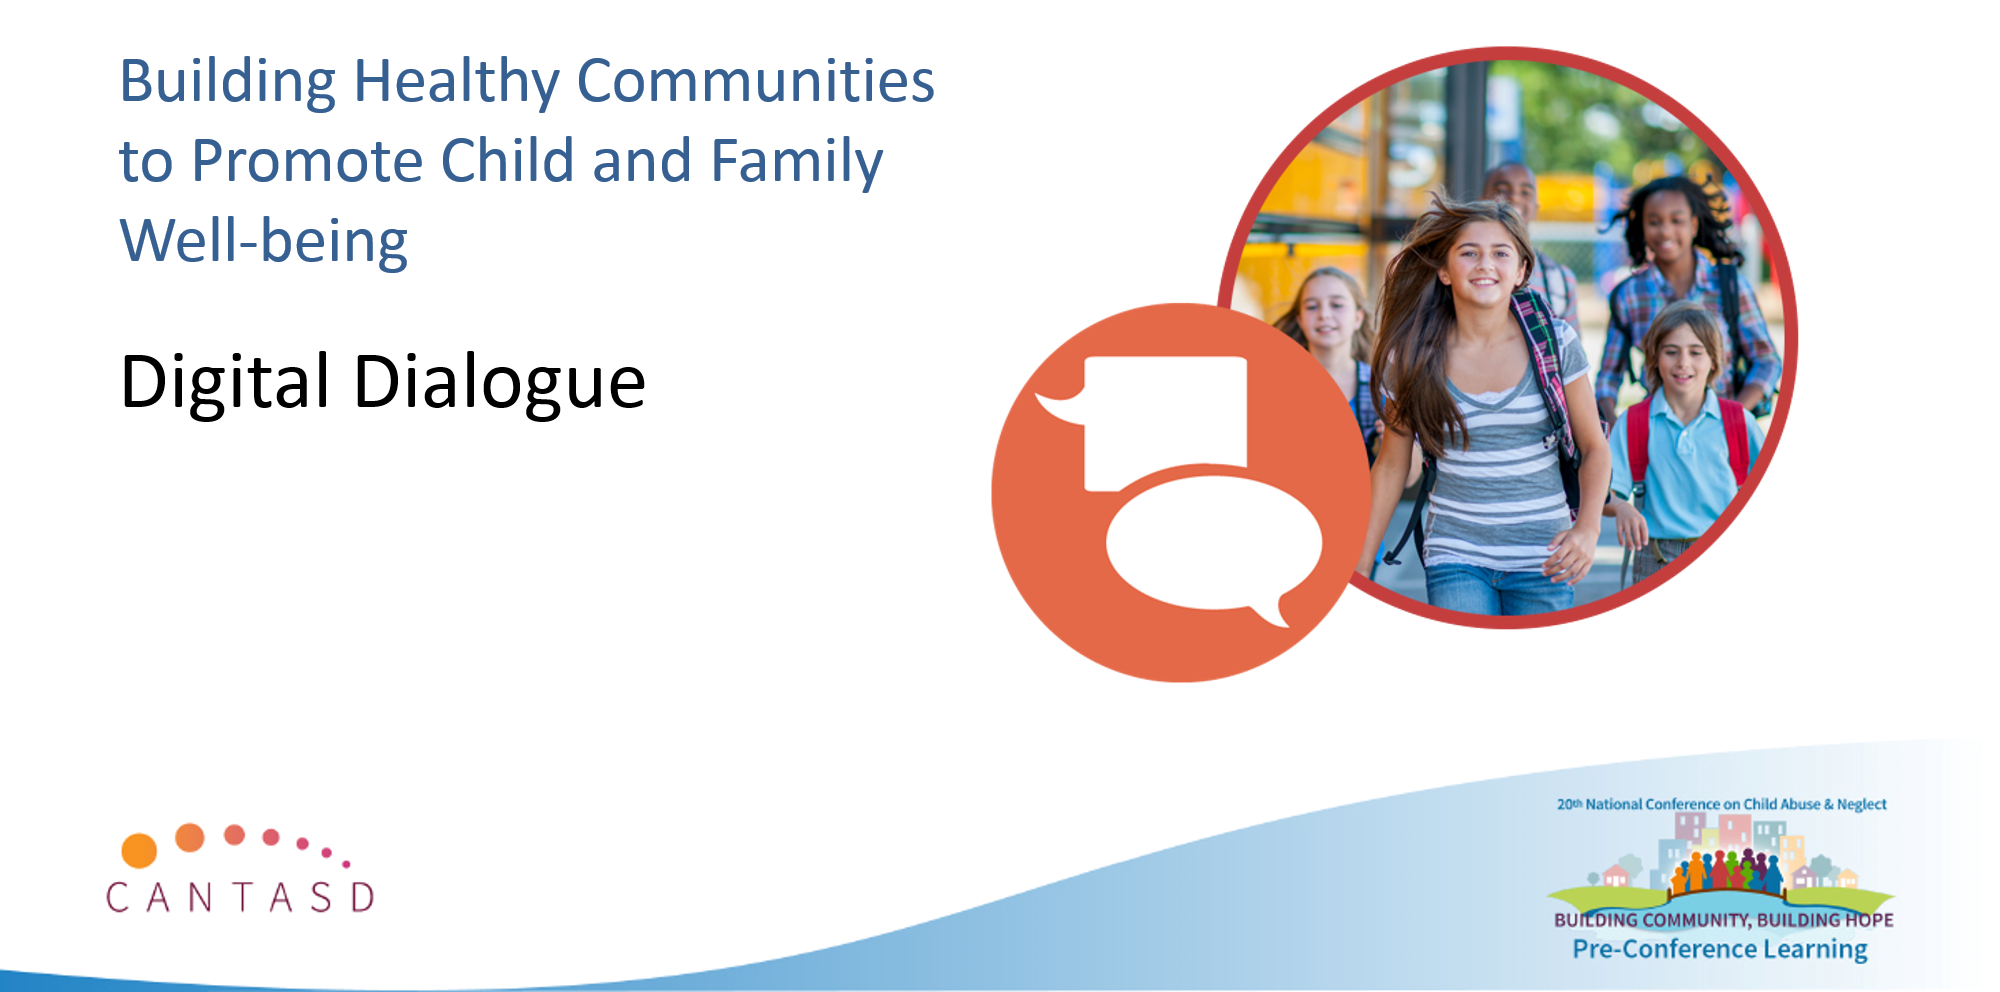 Building Healthy Communities to Promote Child and Family Well-being - This link opens in a new window.